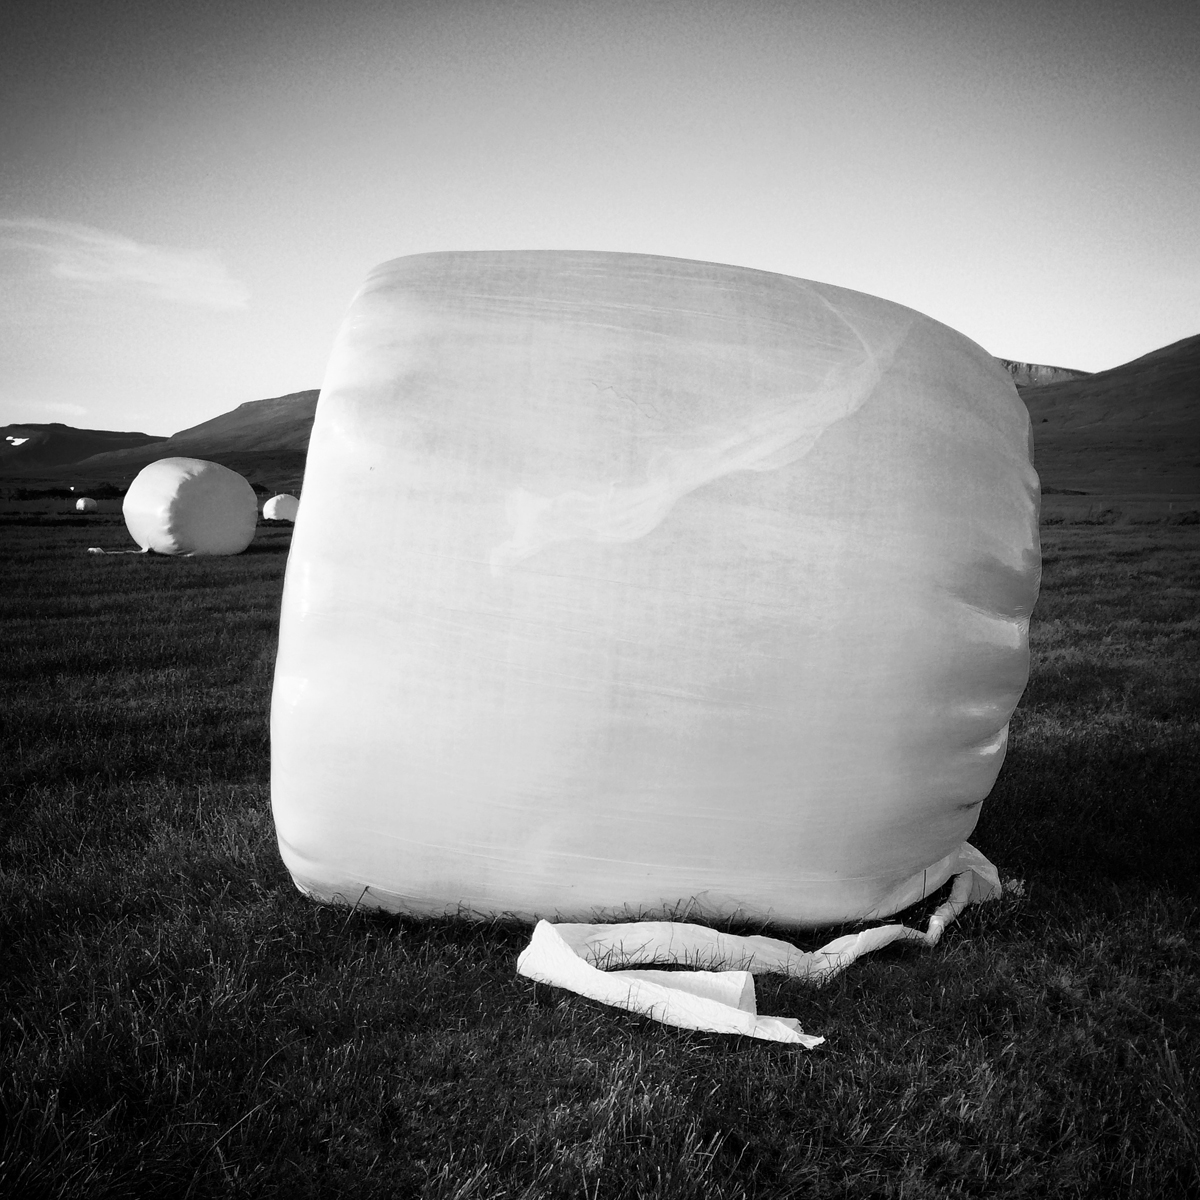 Shiny white plastic covers a series of round hay bales in a grassy landscape.